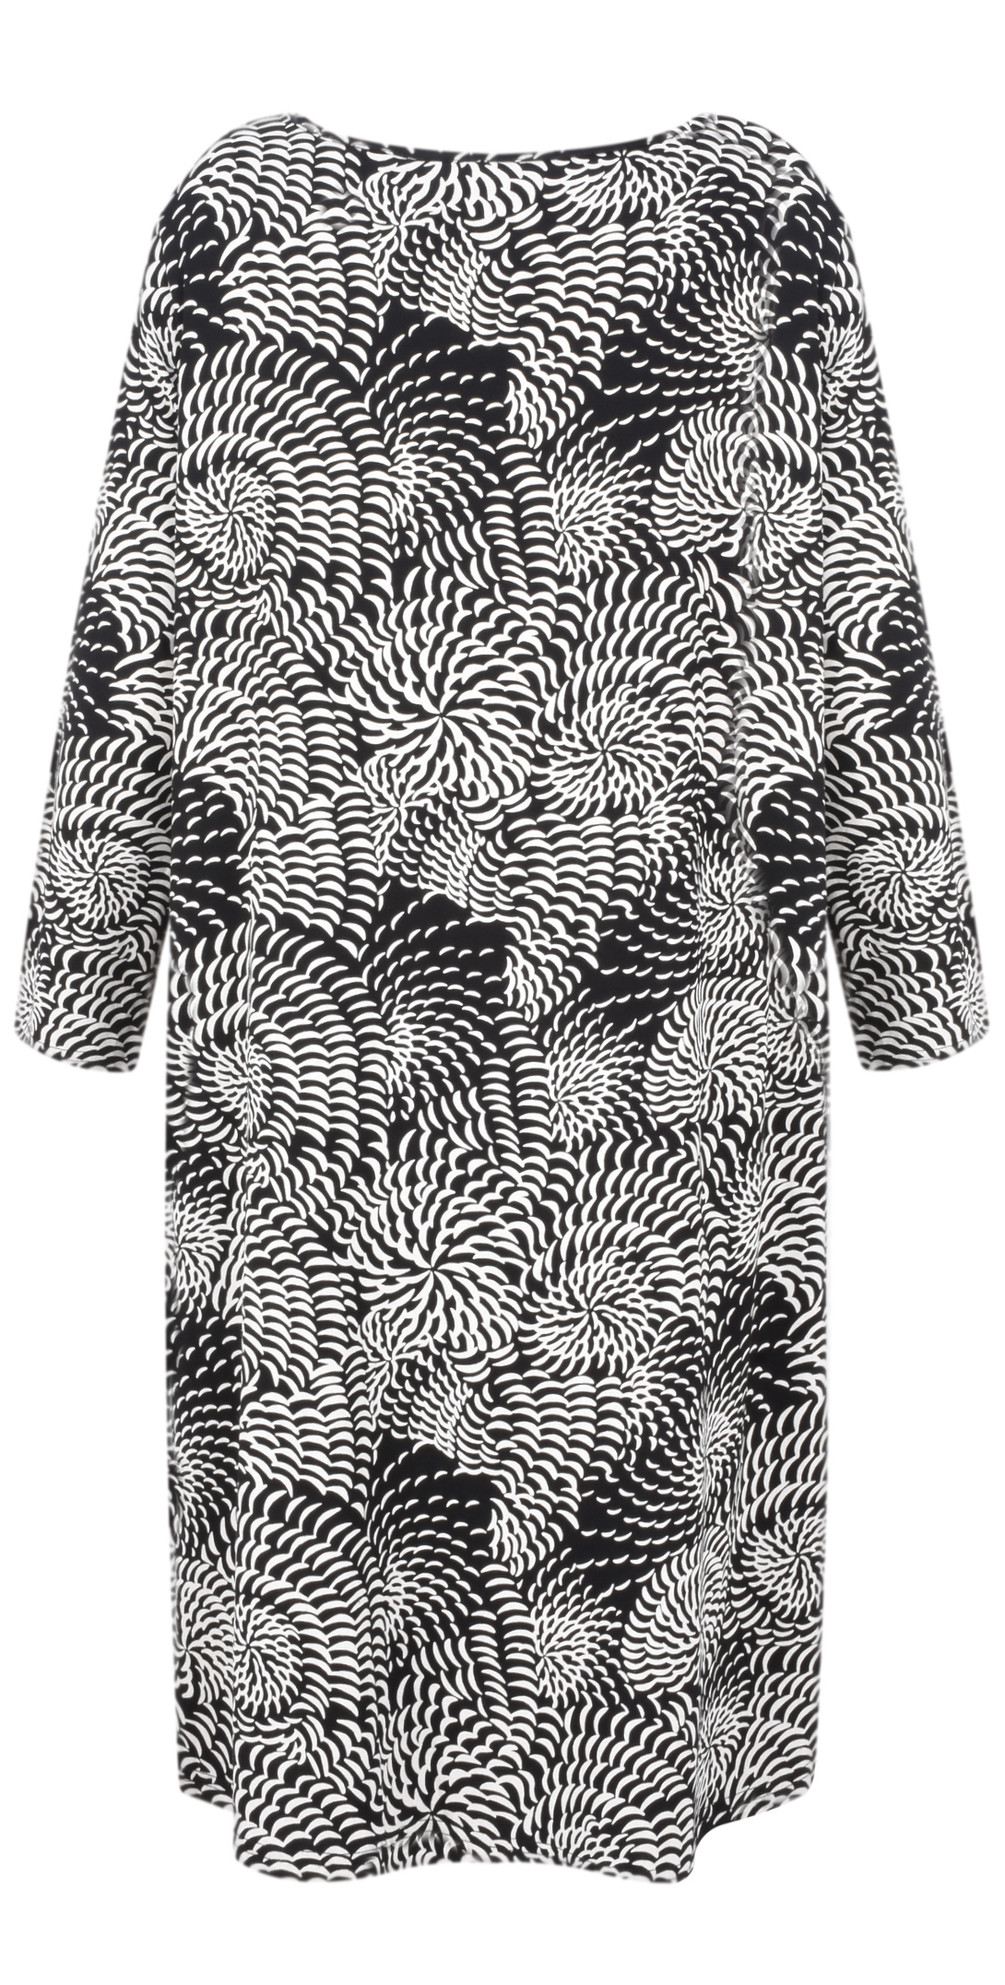 Gerry Abstract Floral Tunic main image